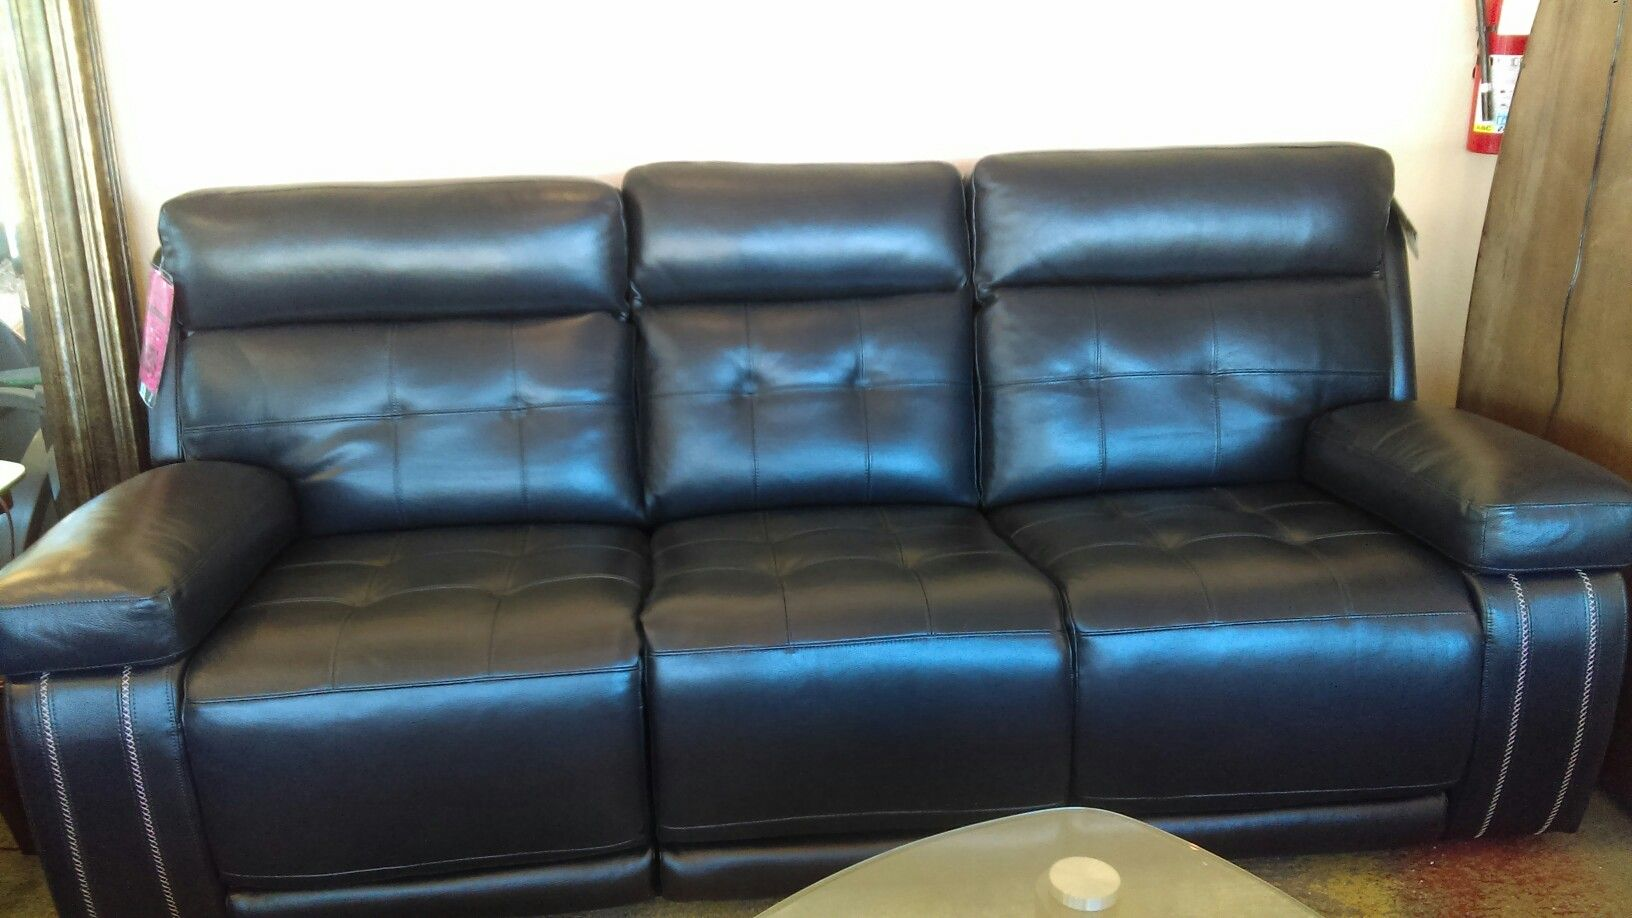 1600 navy top grain leather couch Leather couch, Couch